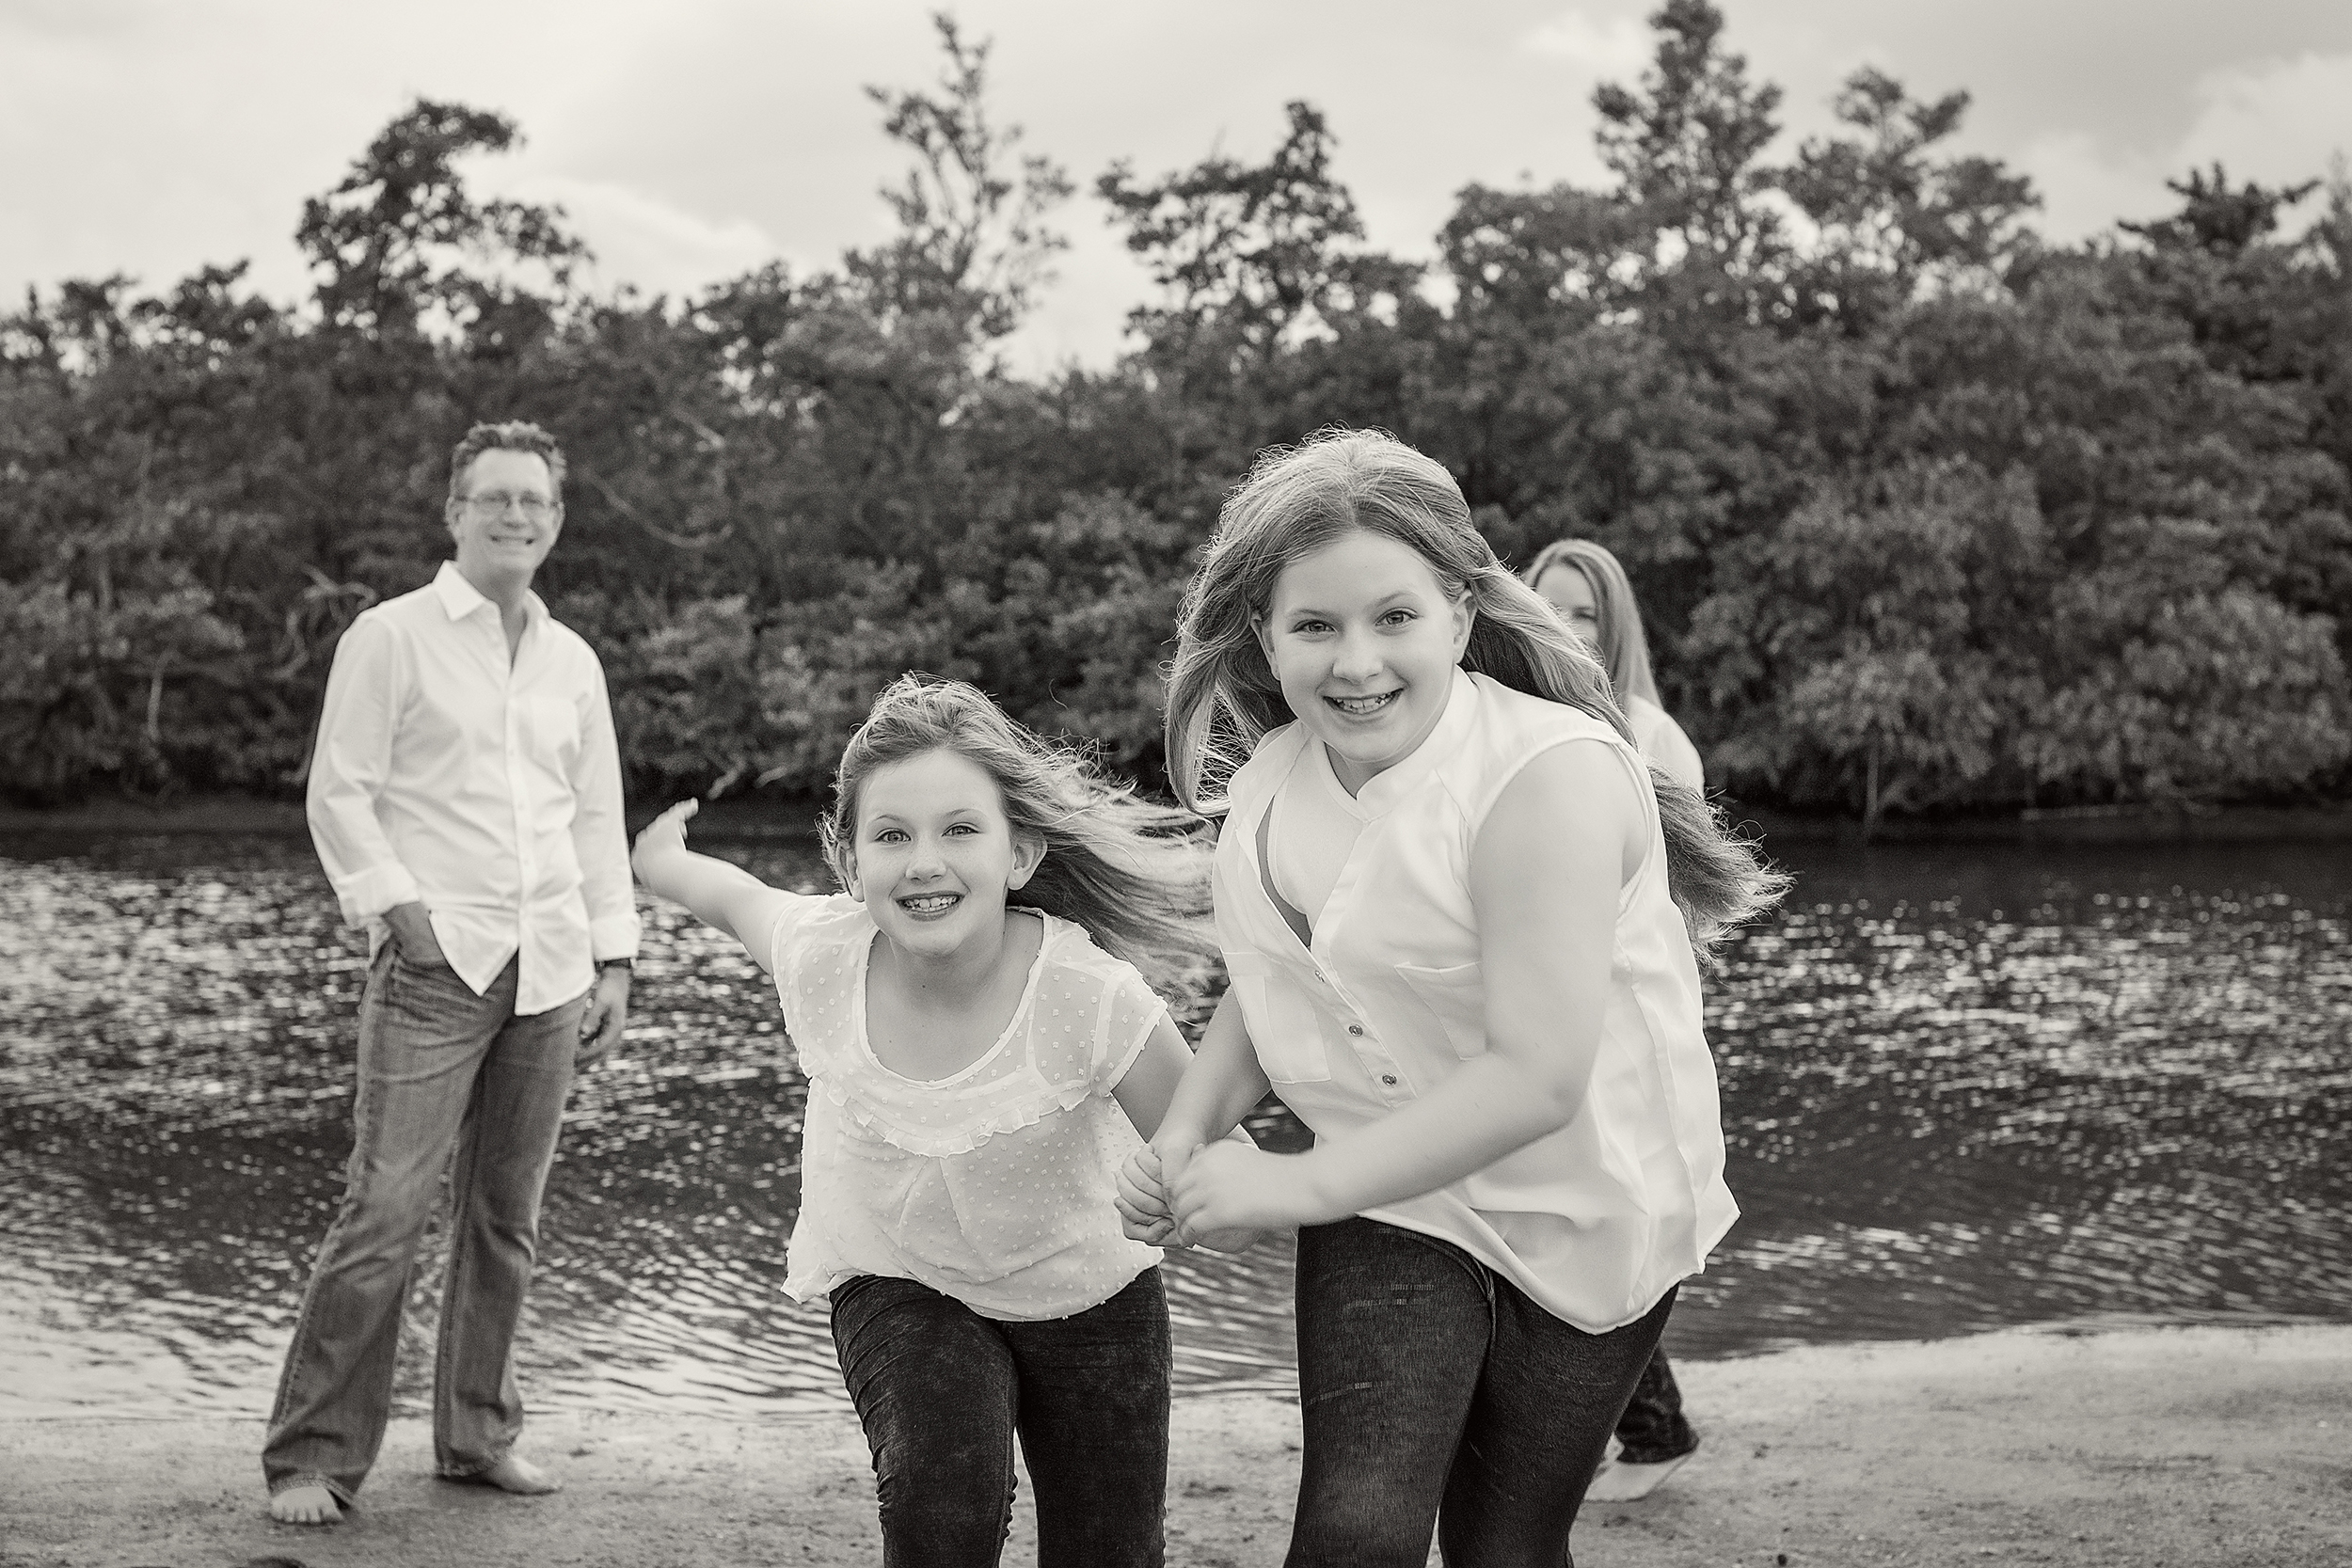 family-photography-south-florida-alison-frank-photography_23.jpg